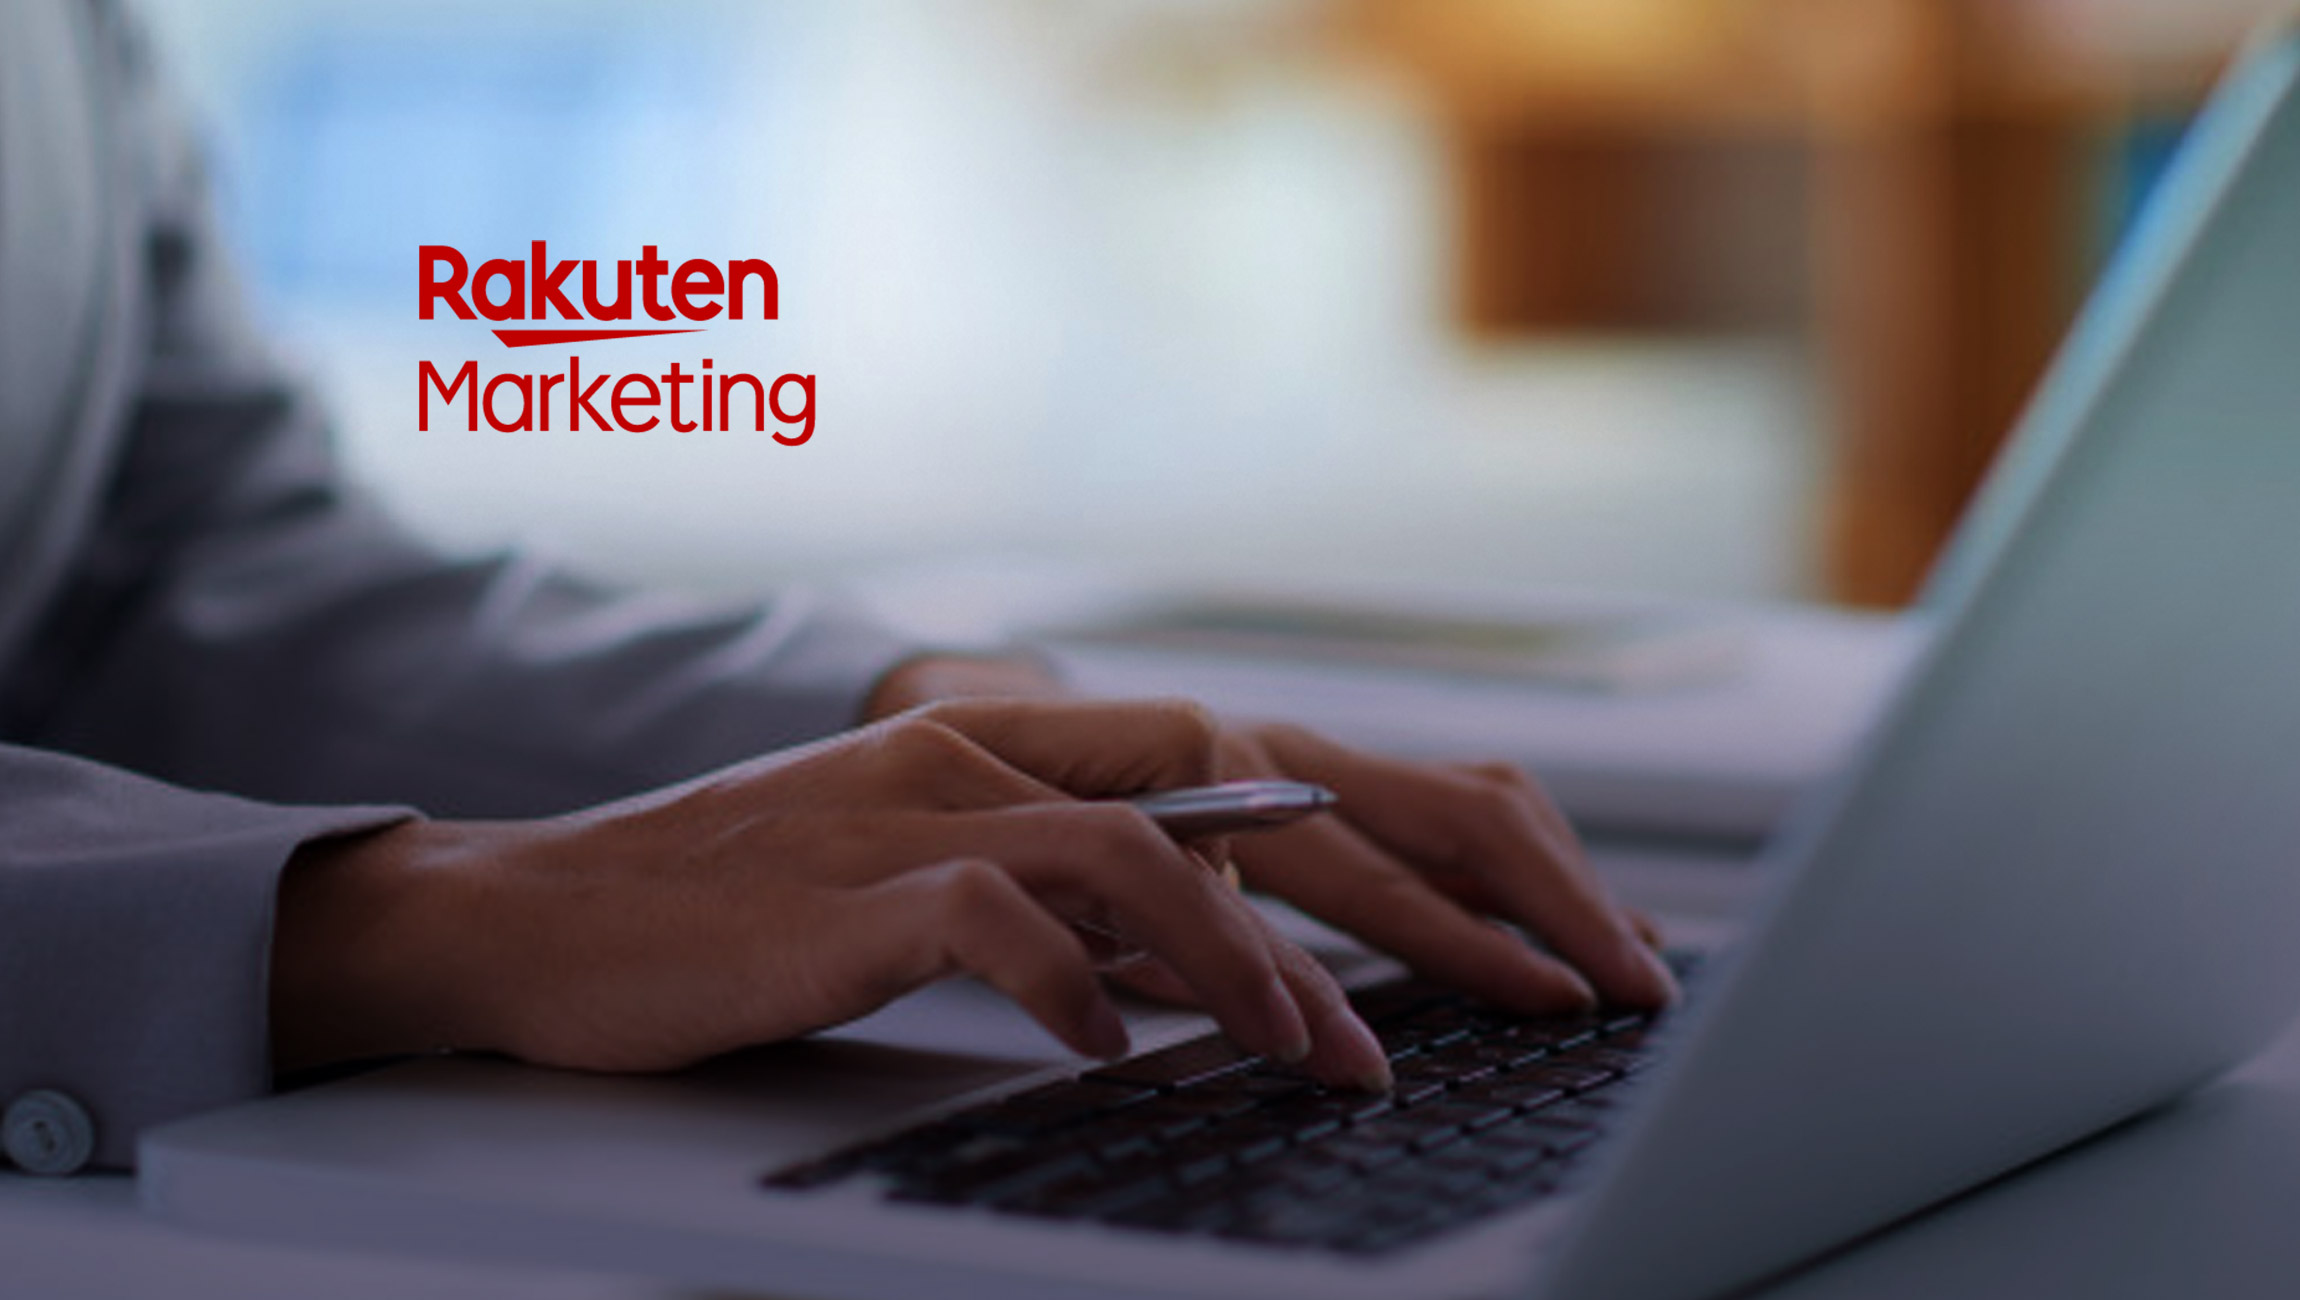 Rakuten Marketing Data Reveals Cyber Weekend Continues To Outstrip Expectations